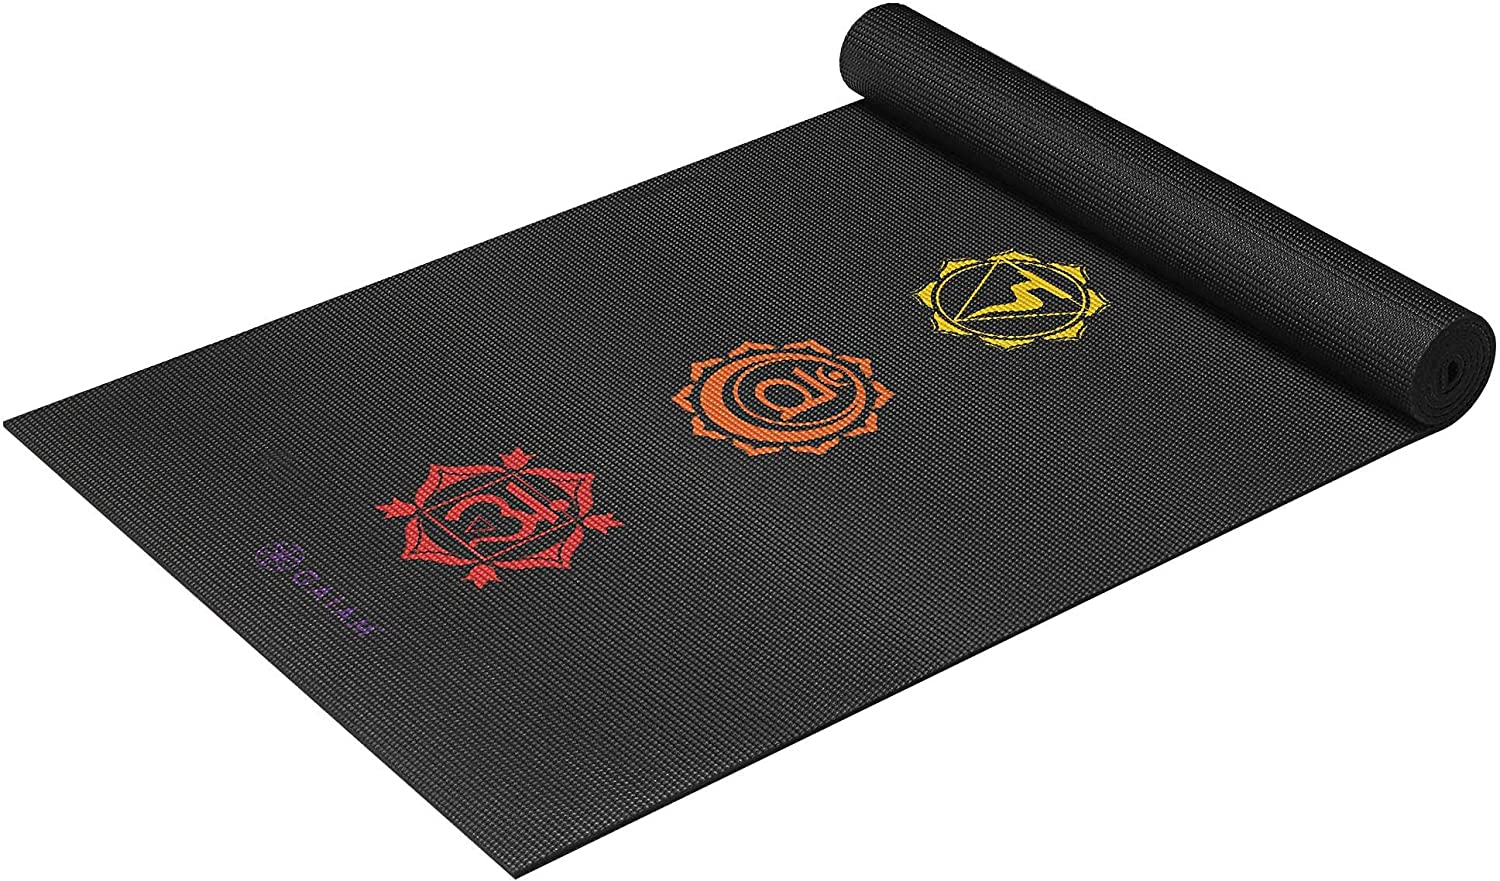 Gaiam Yoga Mat - Premium 6mm Print Extra Thick Non Slip Exercise & Fitness Mat for All Types of Yoga, Pilates & Floor Workouts (68